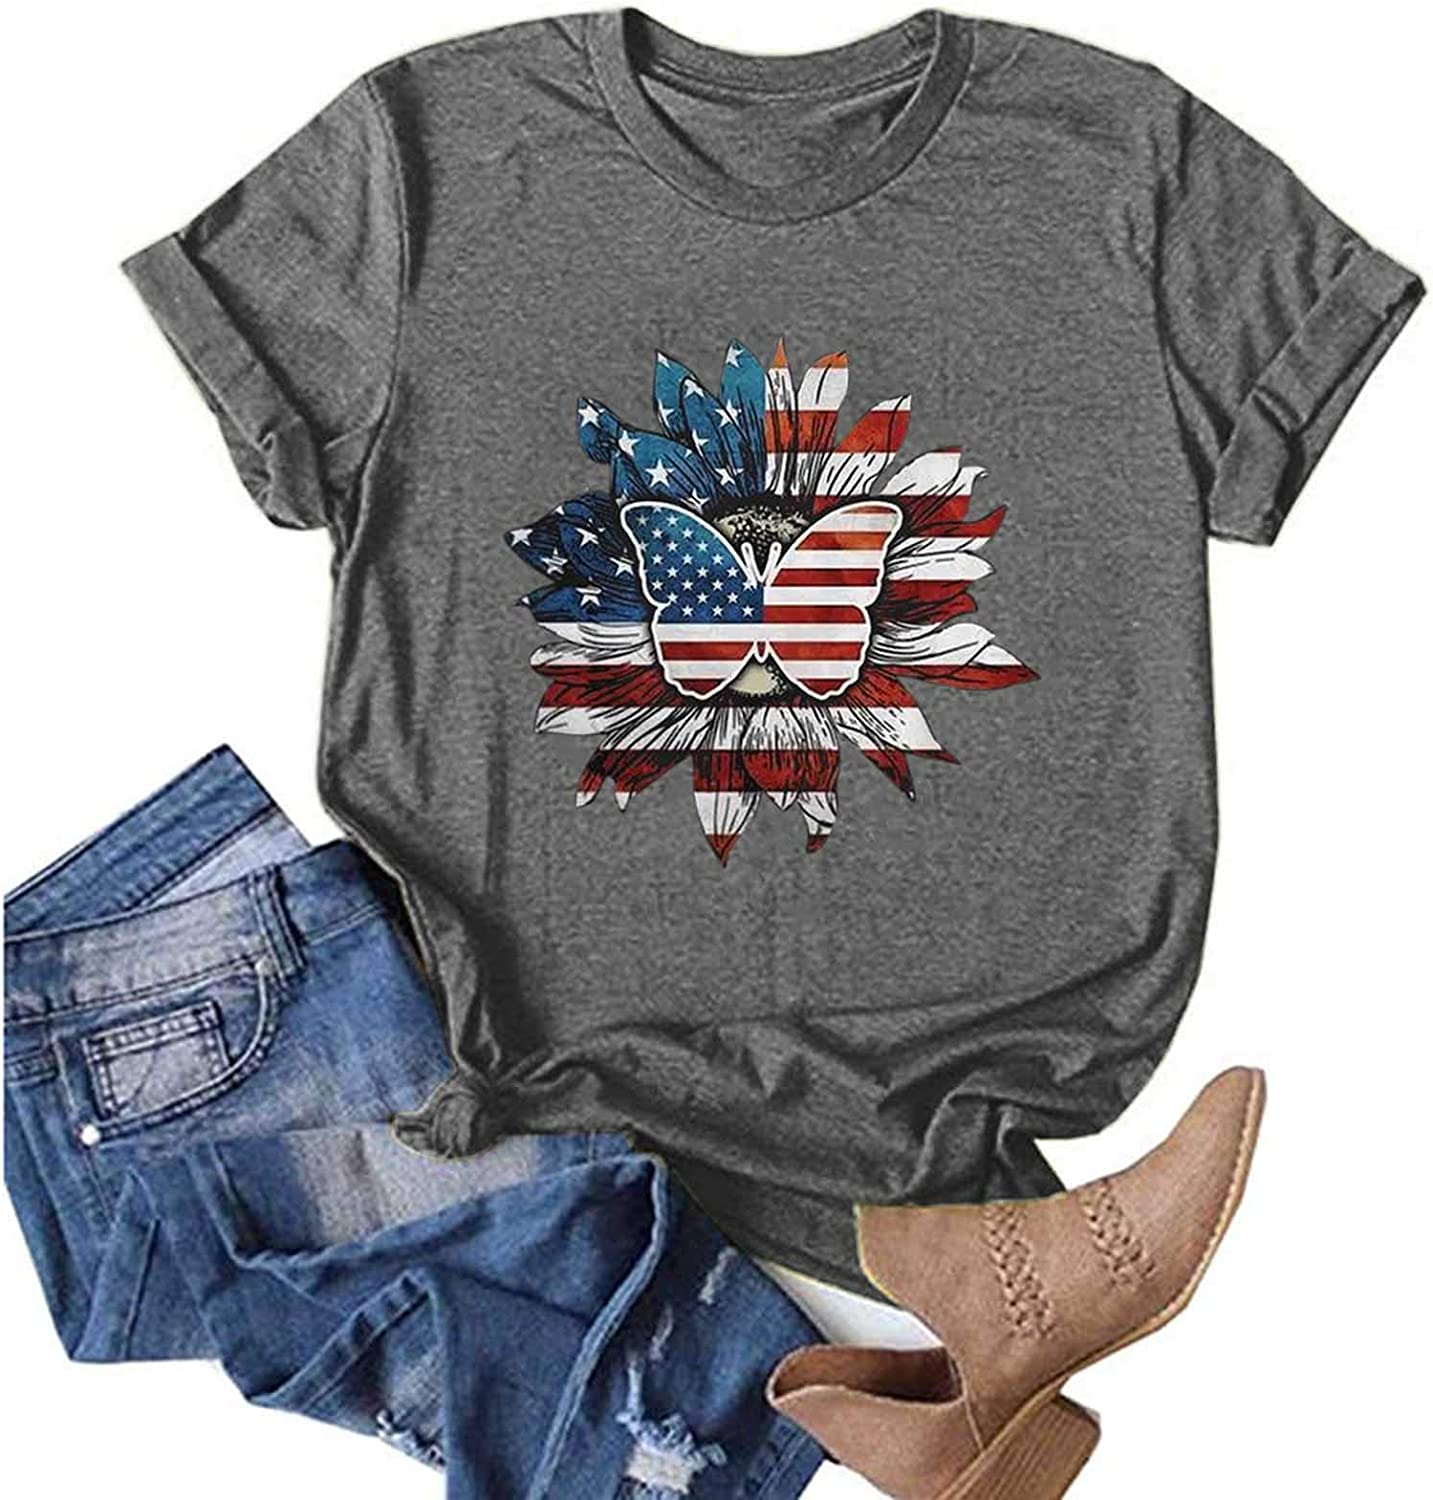 Womens Tops, Womens Independent Day Blouse Short Sleeve Shirts Plus Size Tops Loose Fit Tees Round Neck Graphic Tops